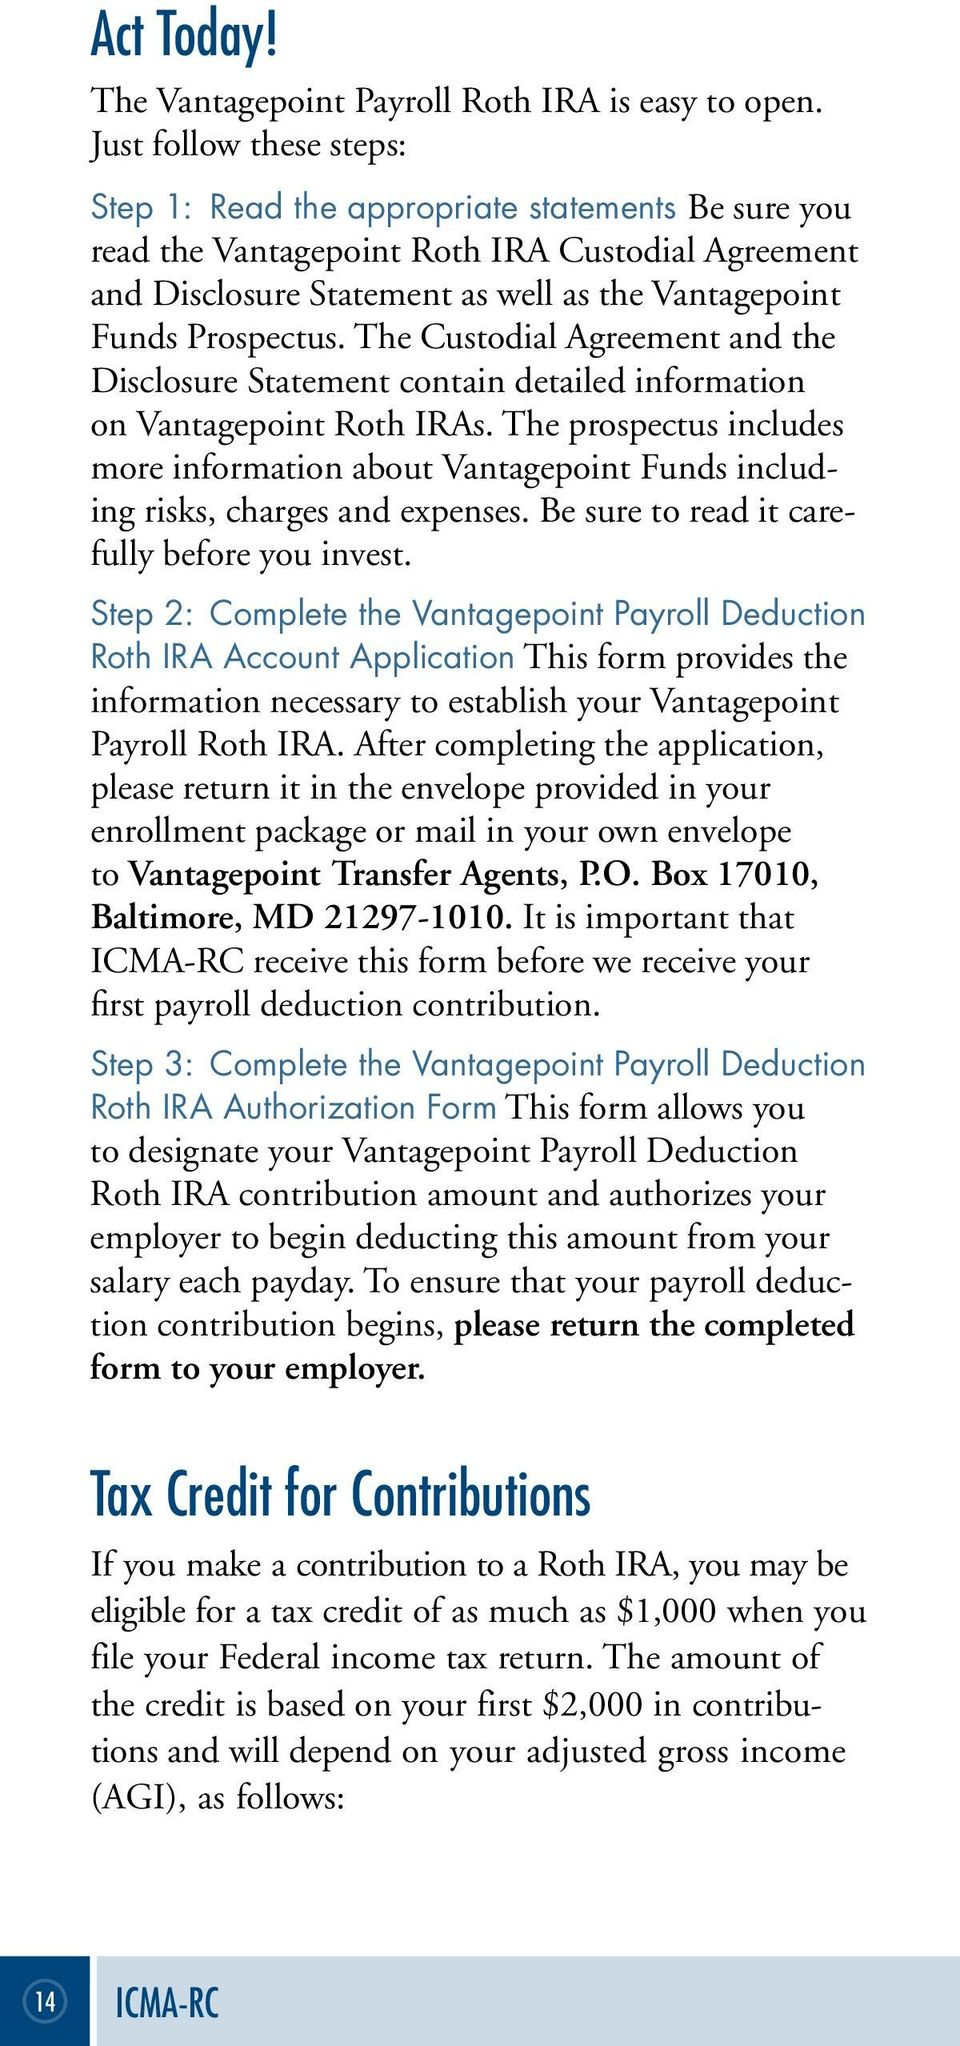 The Custodial Agreement and the Disclosure Statement contain detailed information on Vantagepoint Roth IRAs.